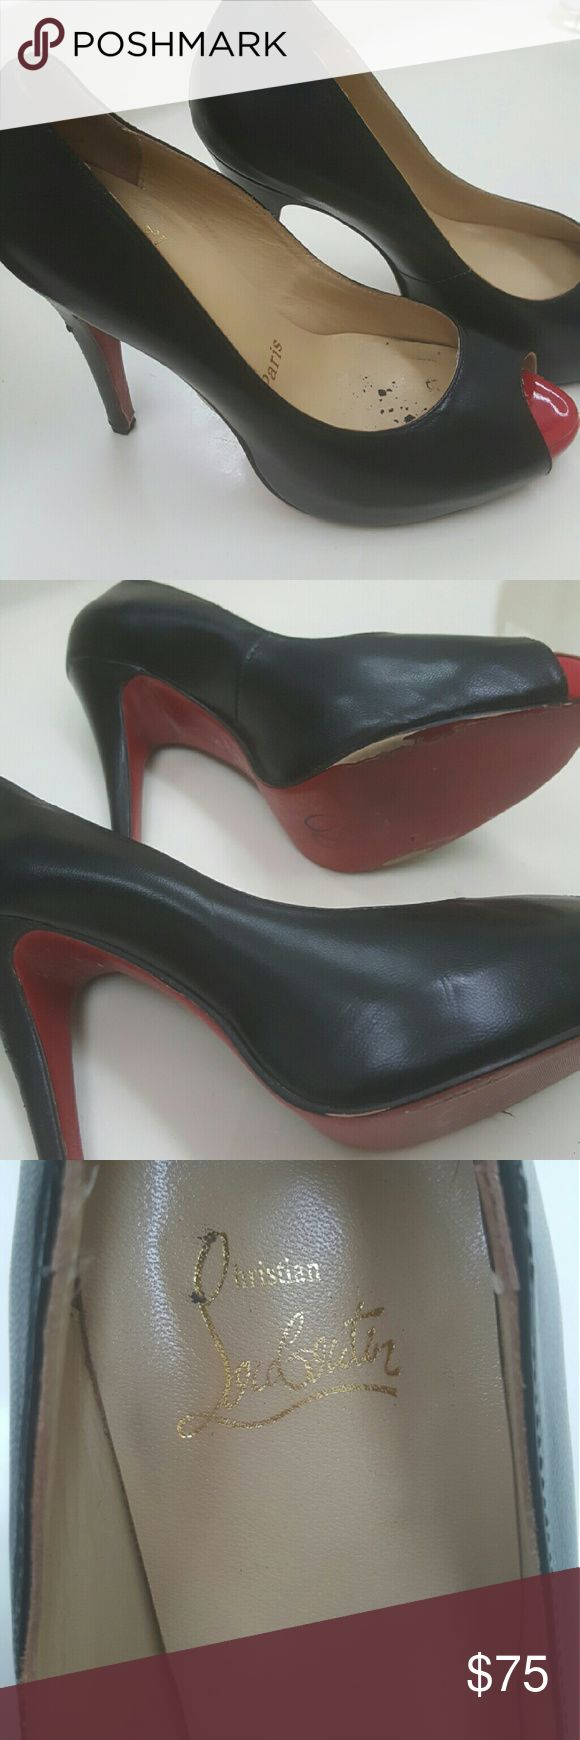 Red bottom shoes Black open toe heels with red tip and bottoms Shoes Heels